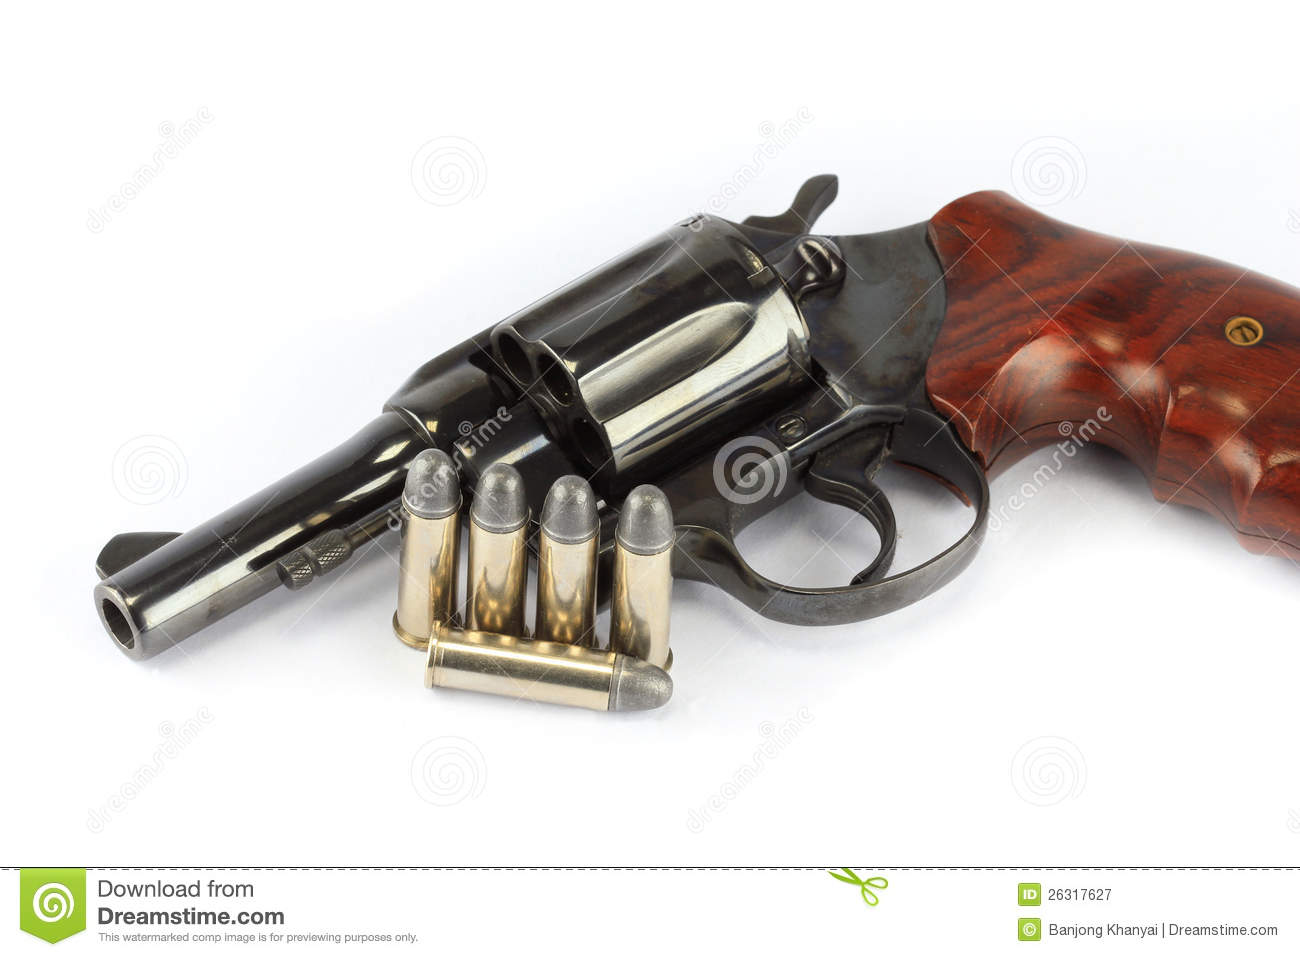 handgun vs no handgun Handguns with no safety no such thing tweet as i observe people who are looking for a handgun for concealed carry or home/vehicle defense.